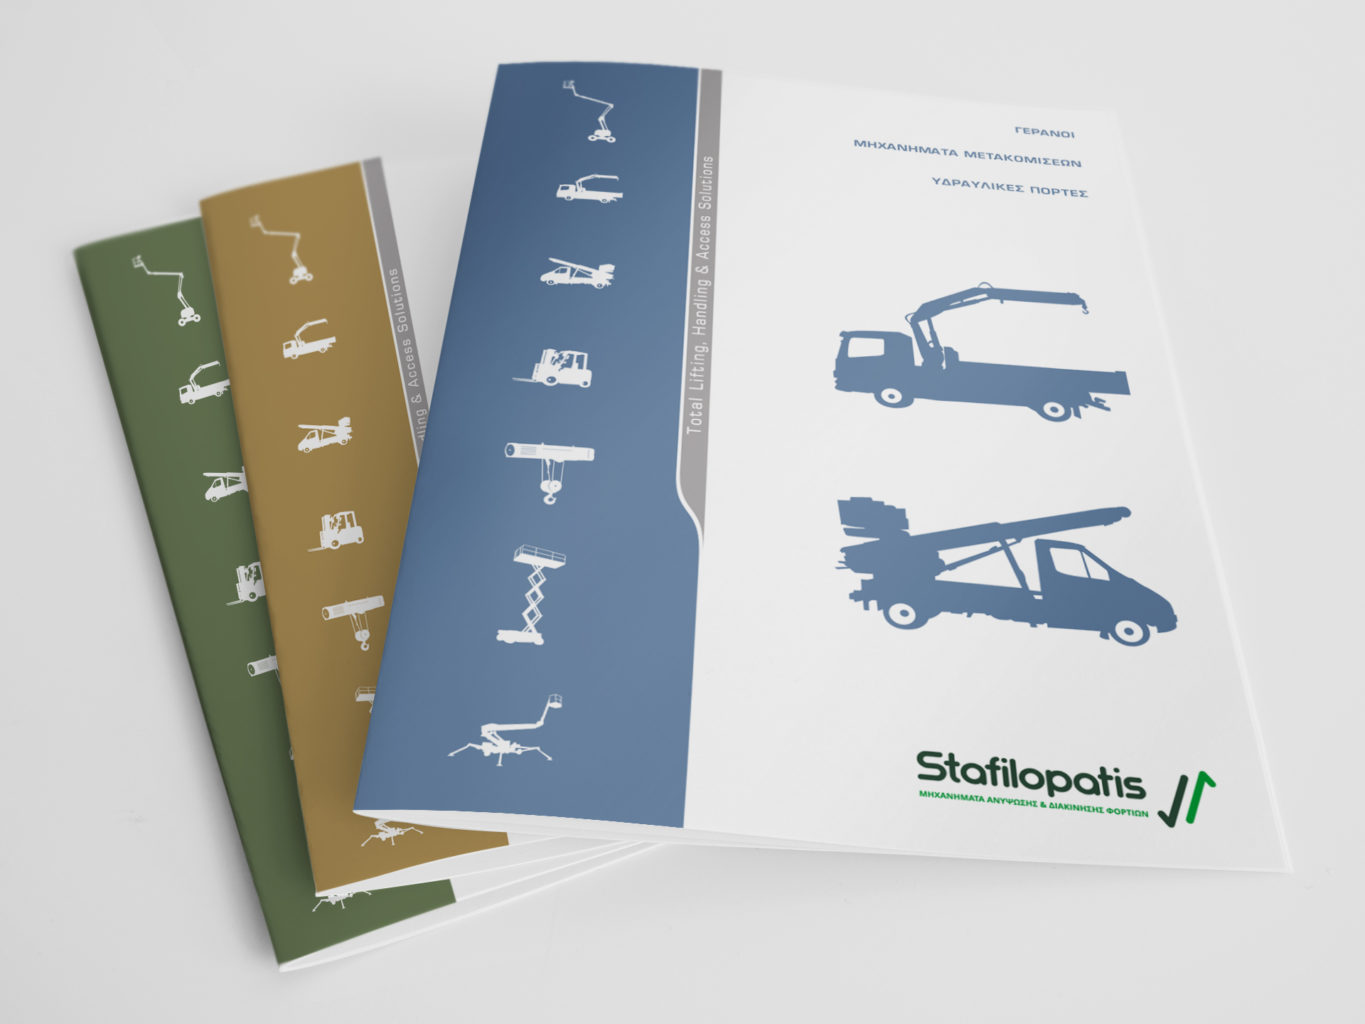 Stafilopatis lifting, handling and access equipment catalogues